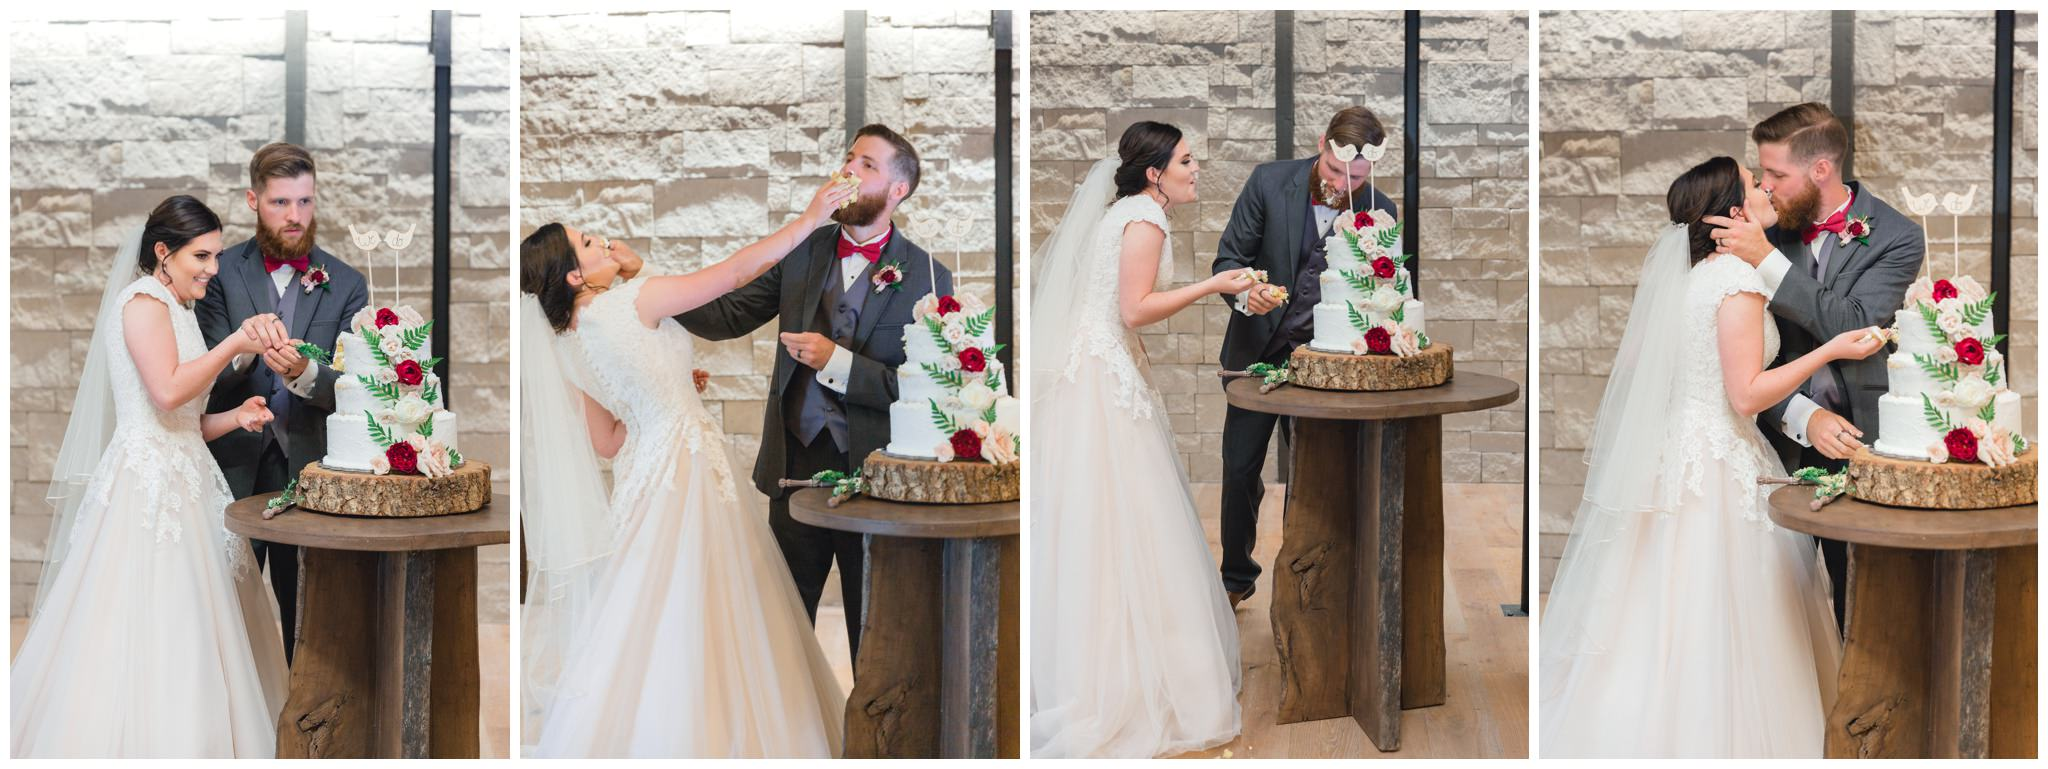 Bride and groom cutting the cake, smashing it into each others faces and then kissing